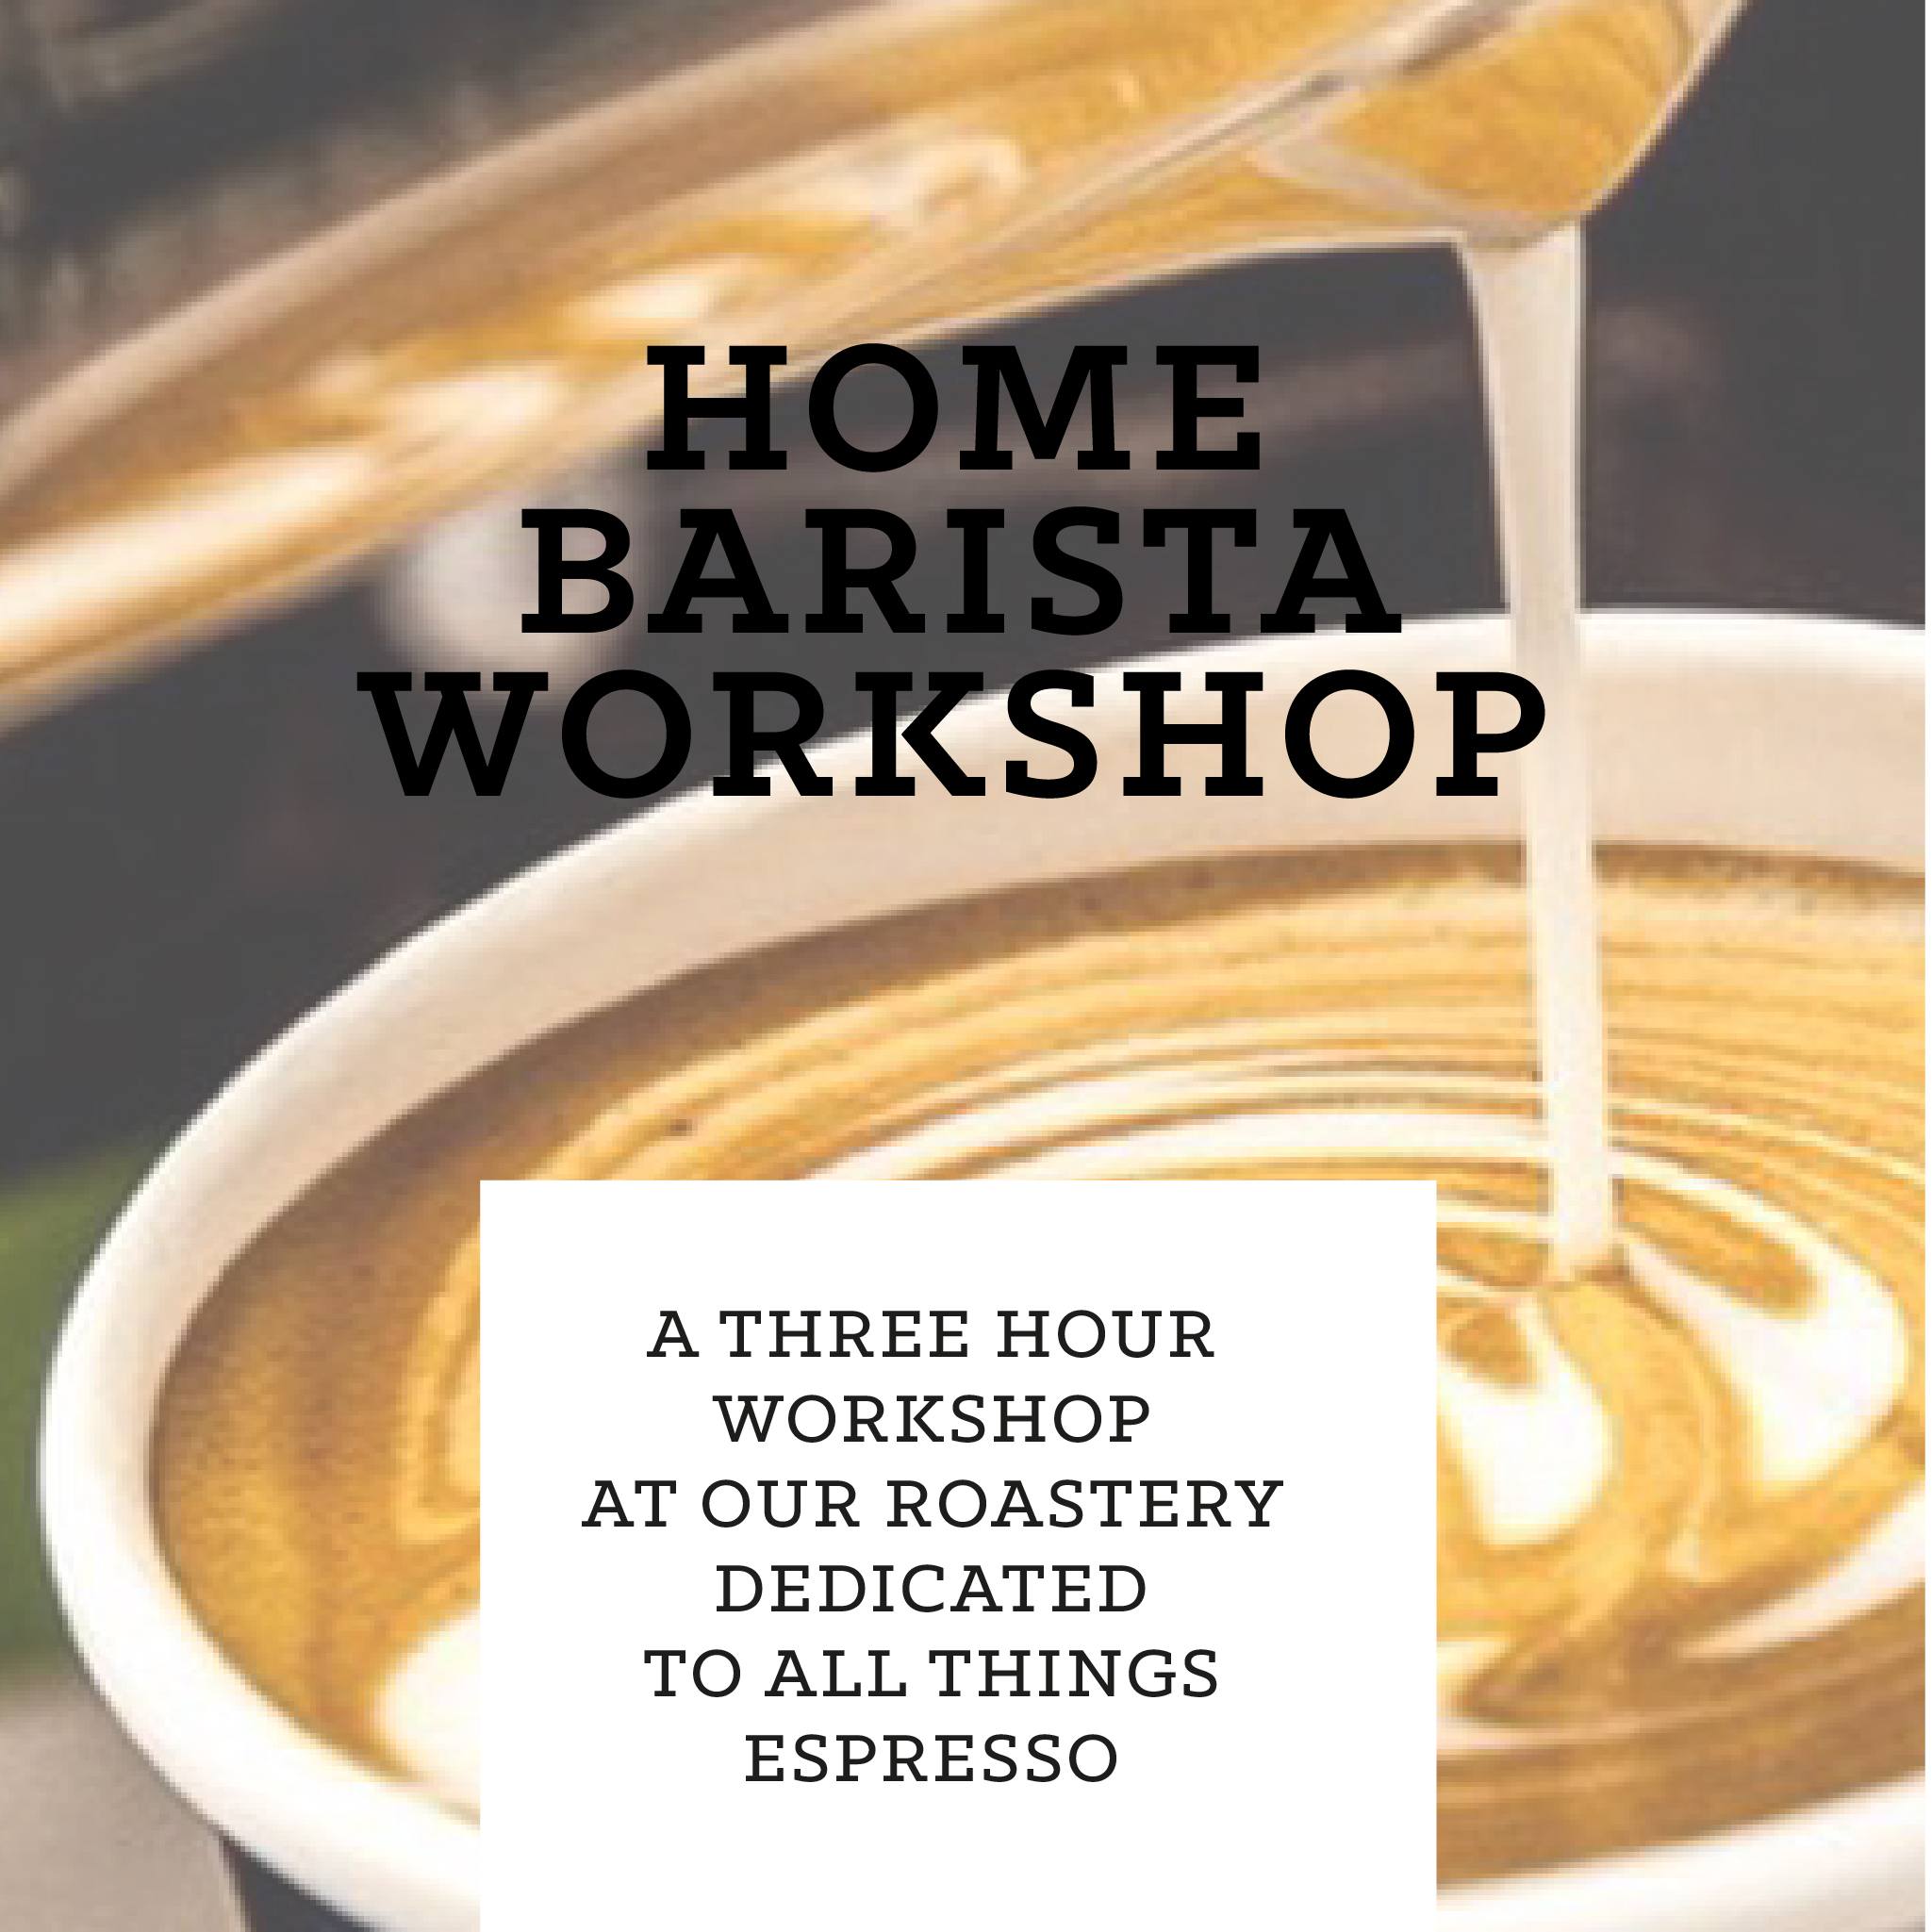 Home Barista Workshop